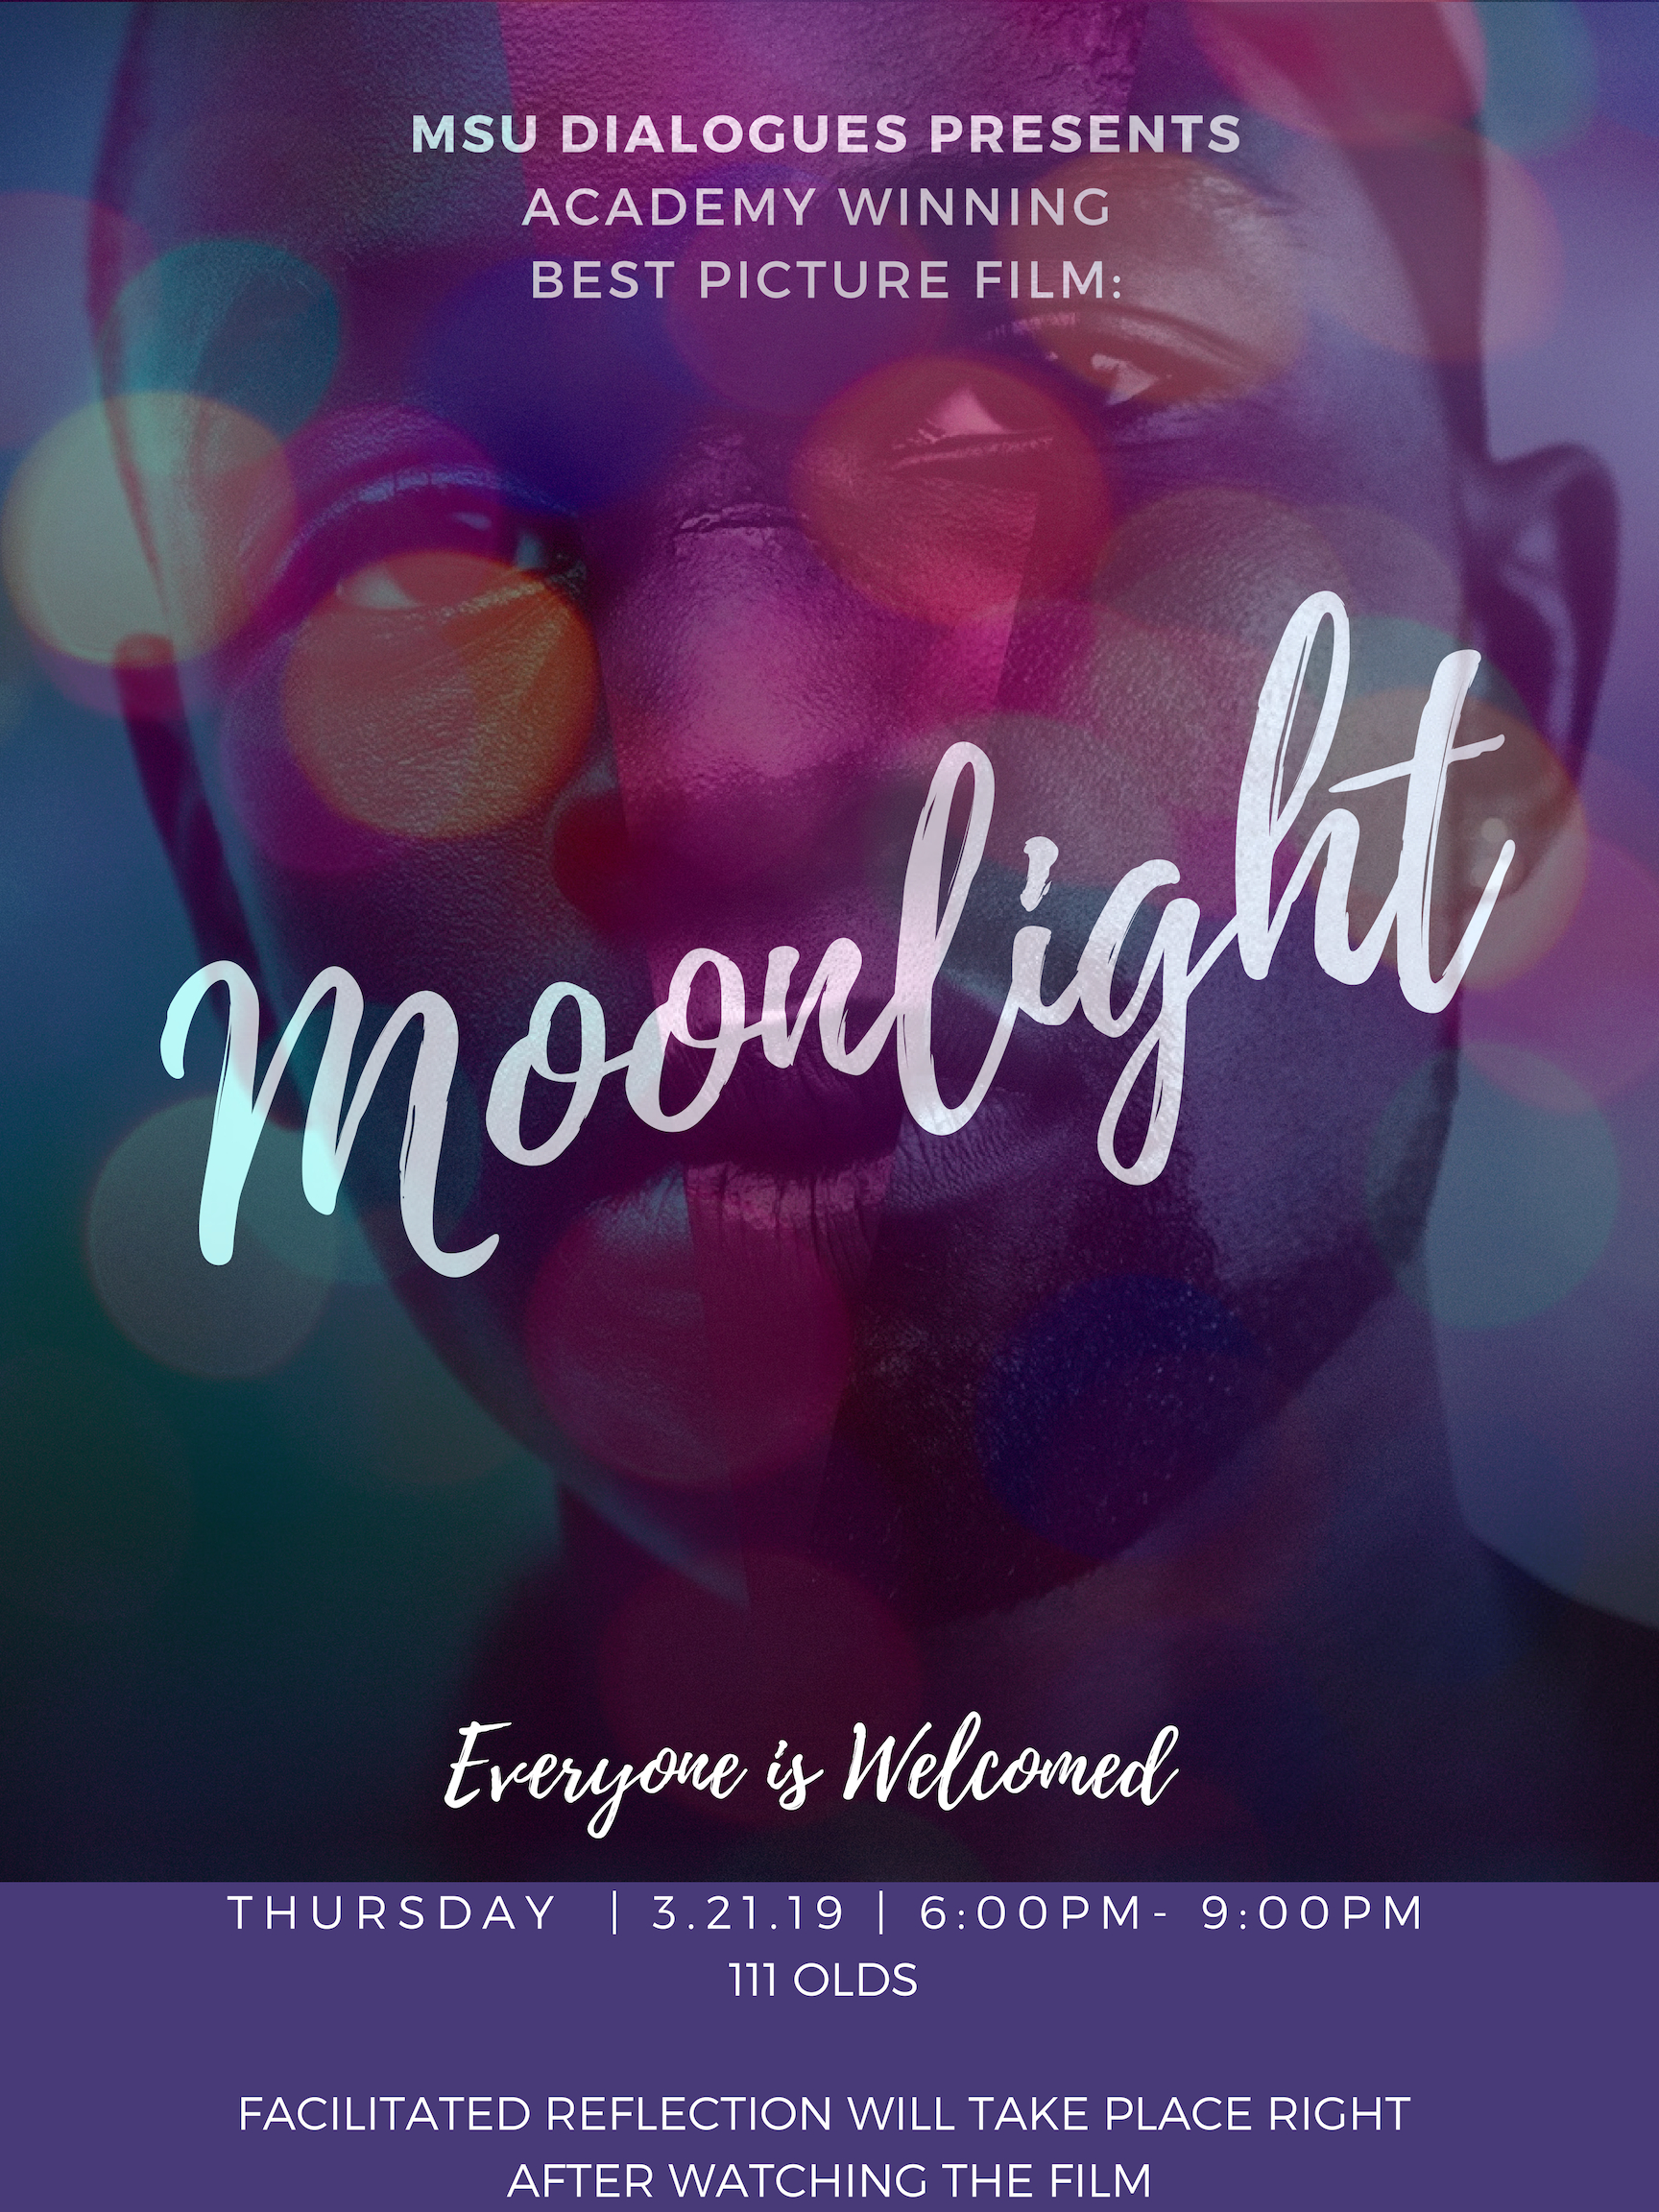 MSU DIALOGUES PRESENT: MOONLIGHT @ 111 Olds